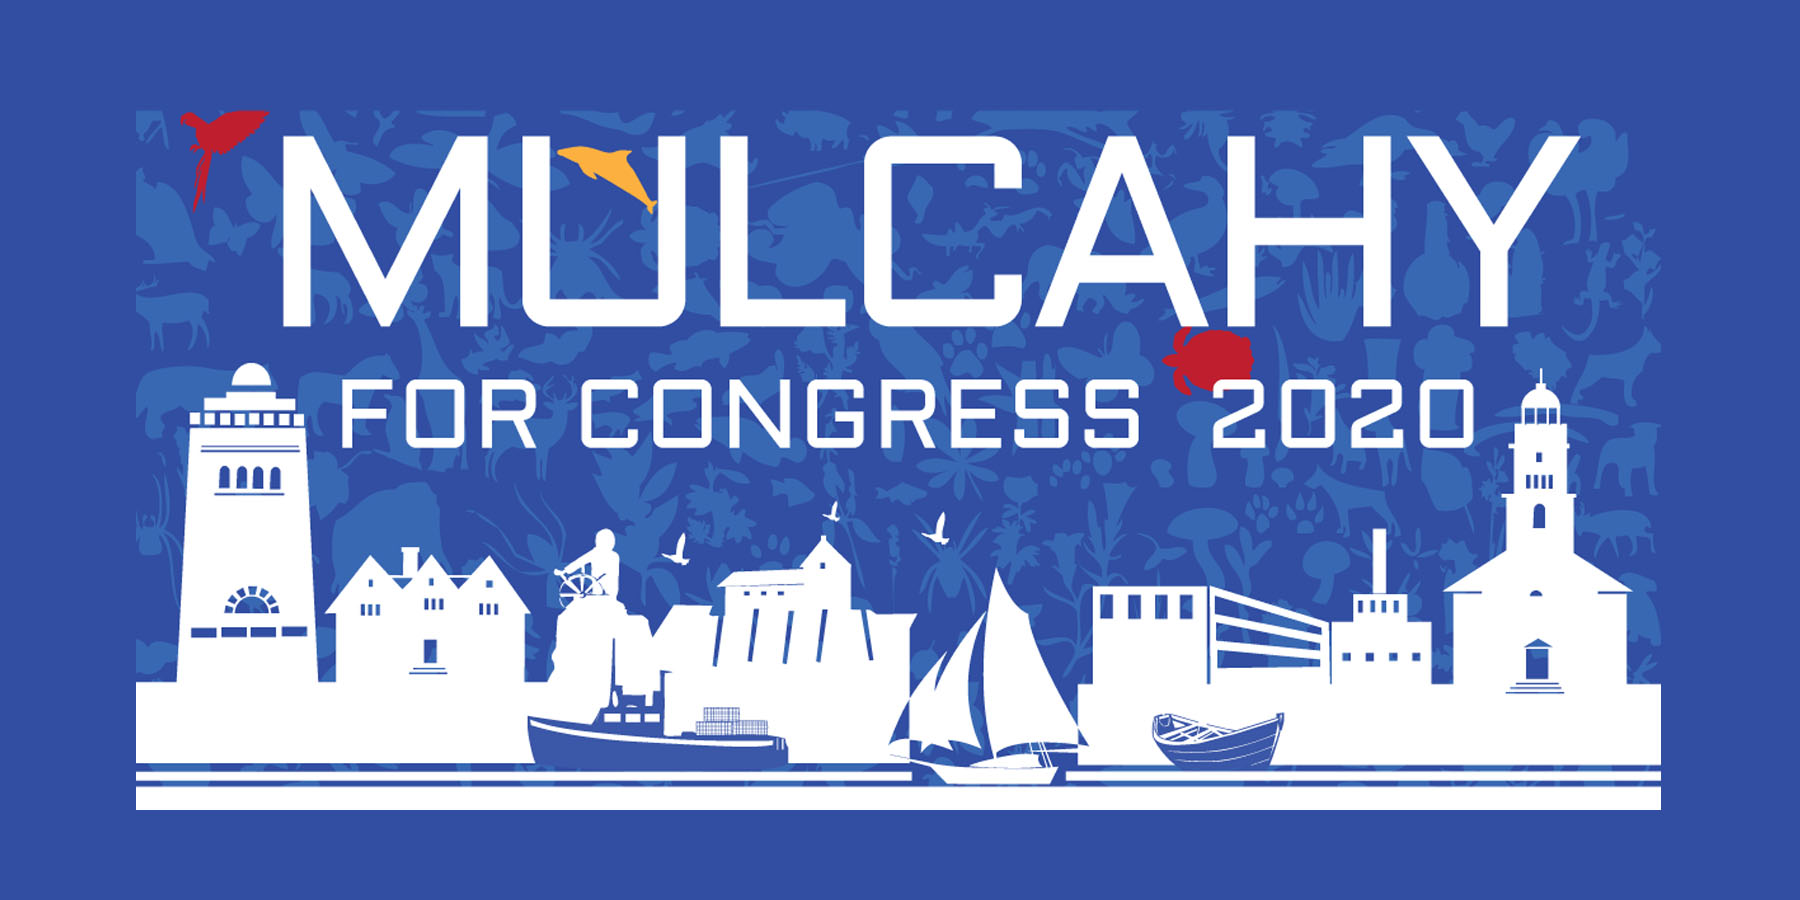 """Mulcahy for Congress 2020"" section of campaign image"